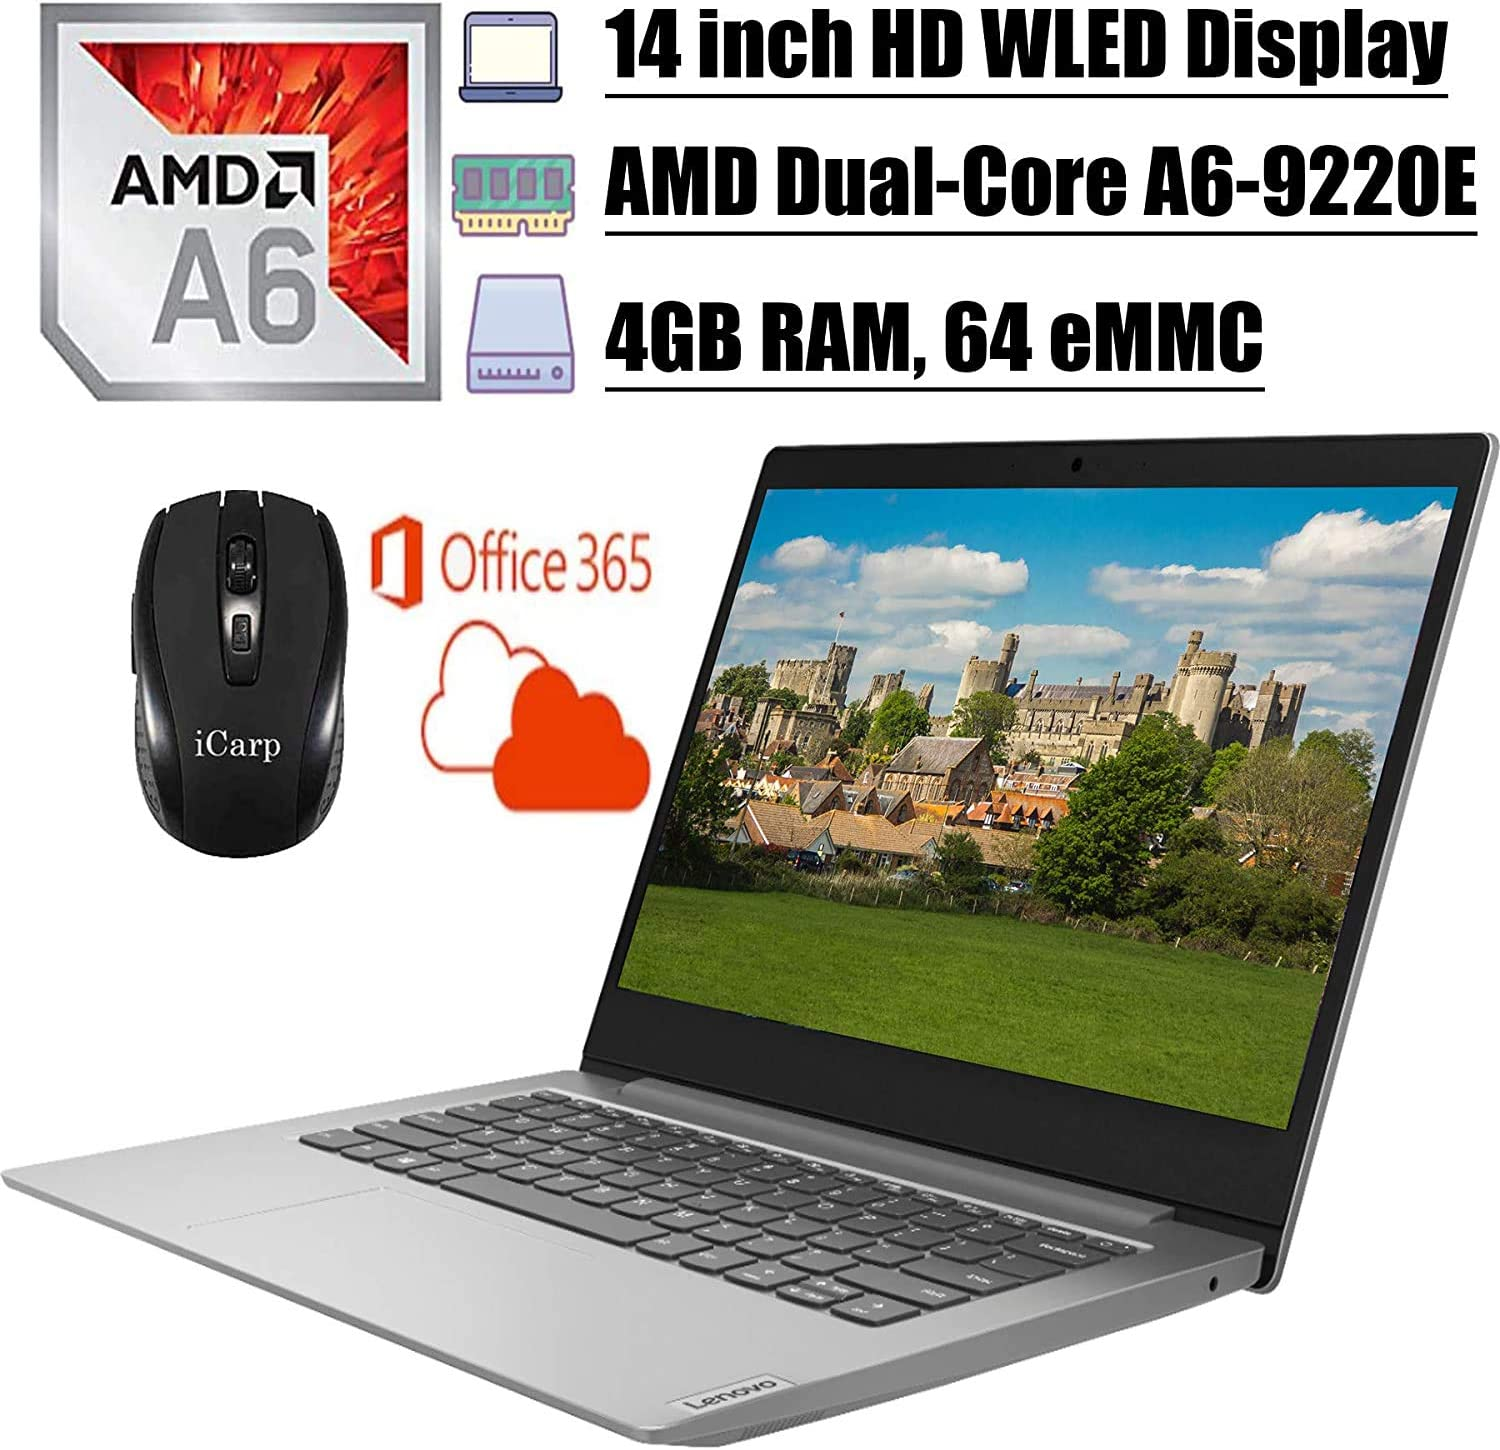 2020 Newest Lenovo IdeaPad 14 Laptop Computer 14 inch HD WLED Display AMD A6-9220e Processor 4GB DDR4 64GB eMMC Office 365 Personal WiFi HDMI Webcam Win10 + iCarp Wireless Mouse